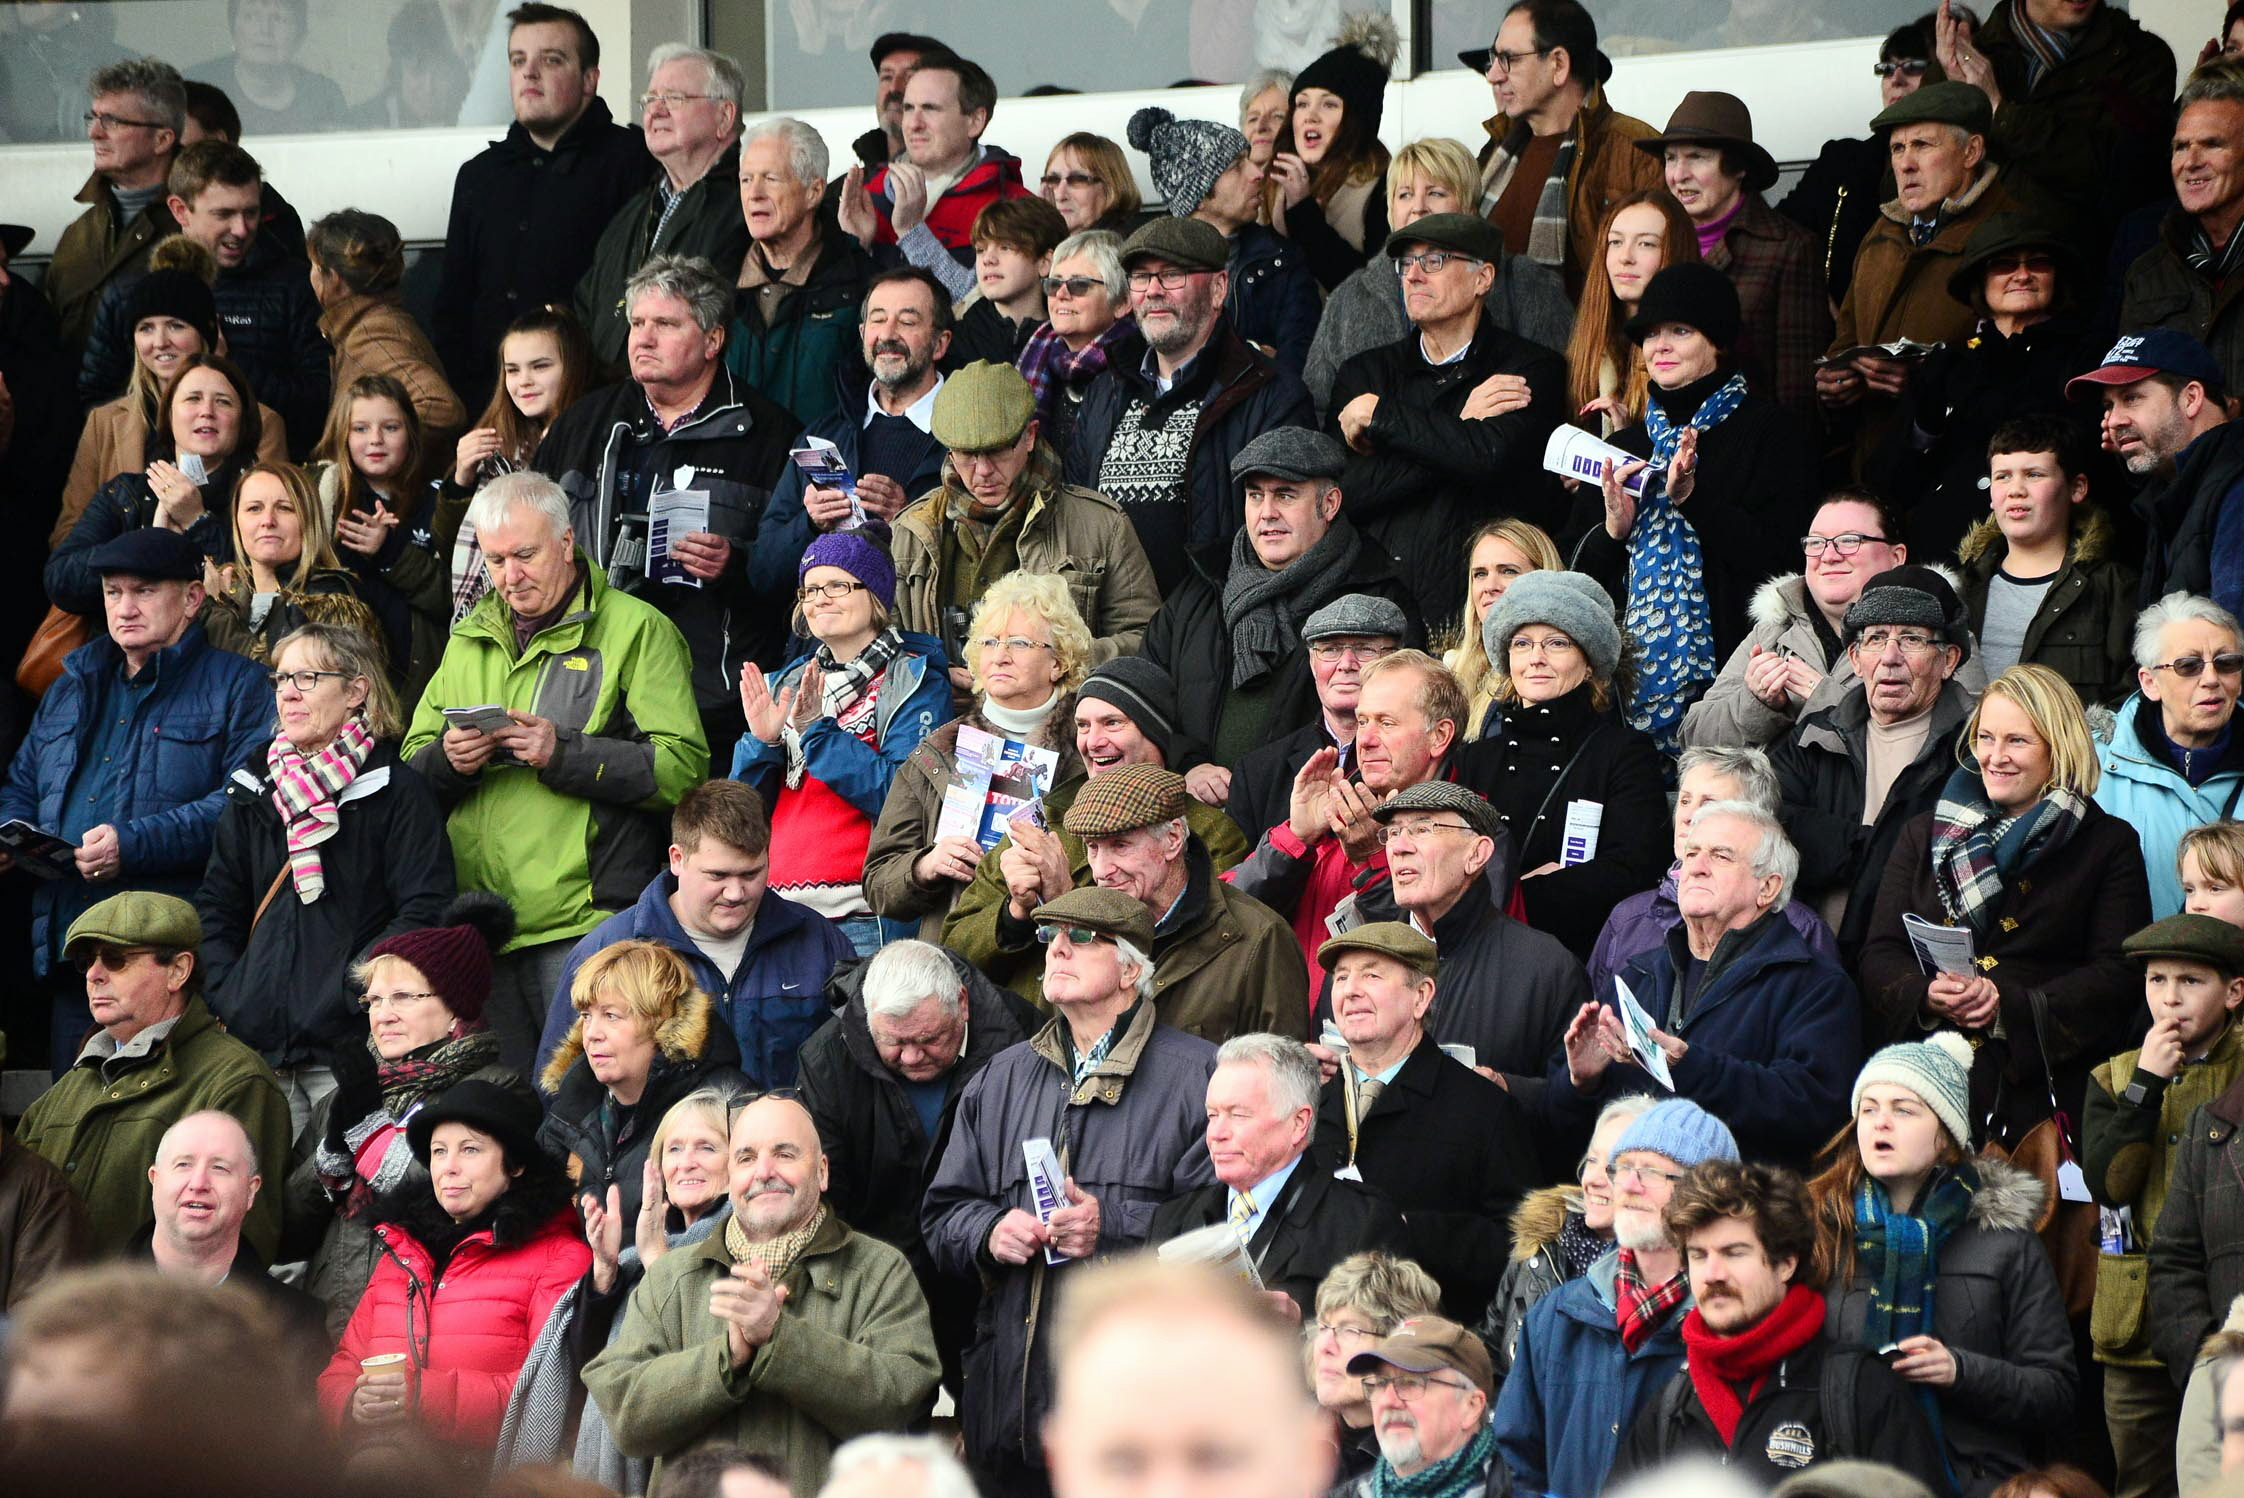 LUCKY DAY?: Punters will be hoping for some success at Taunton's Spring Meeting